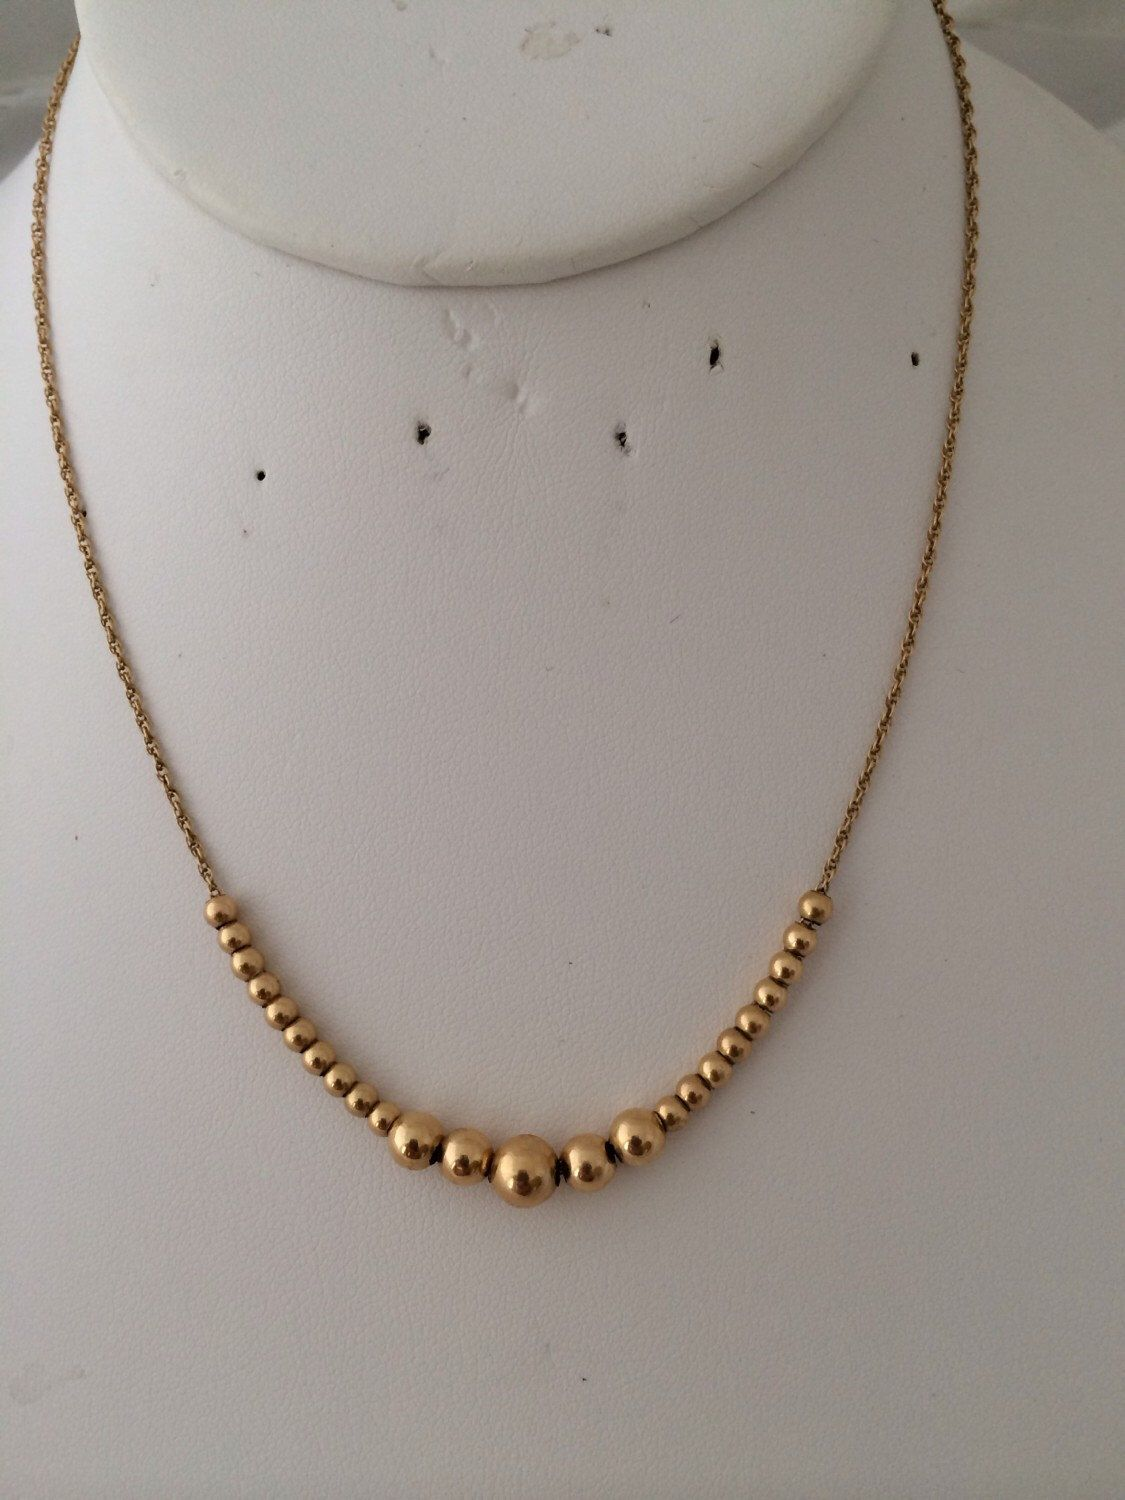 A personal favorite from my Etsy shop https://www.etsy.com/listing/237222174/lovely-14k-gold-floating-ball-add-a-bead. HauteCoutureLaLa